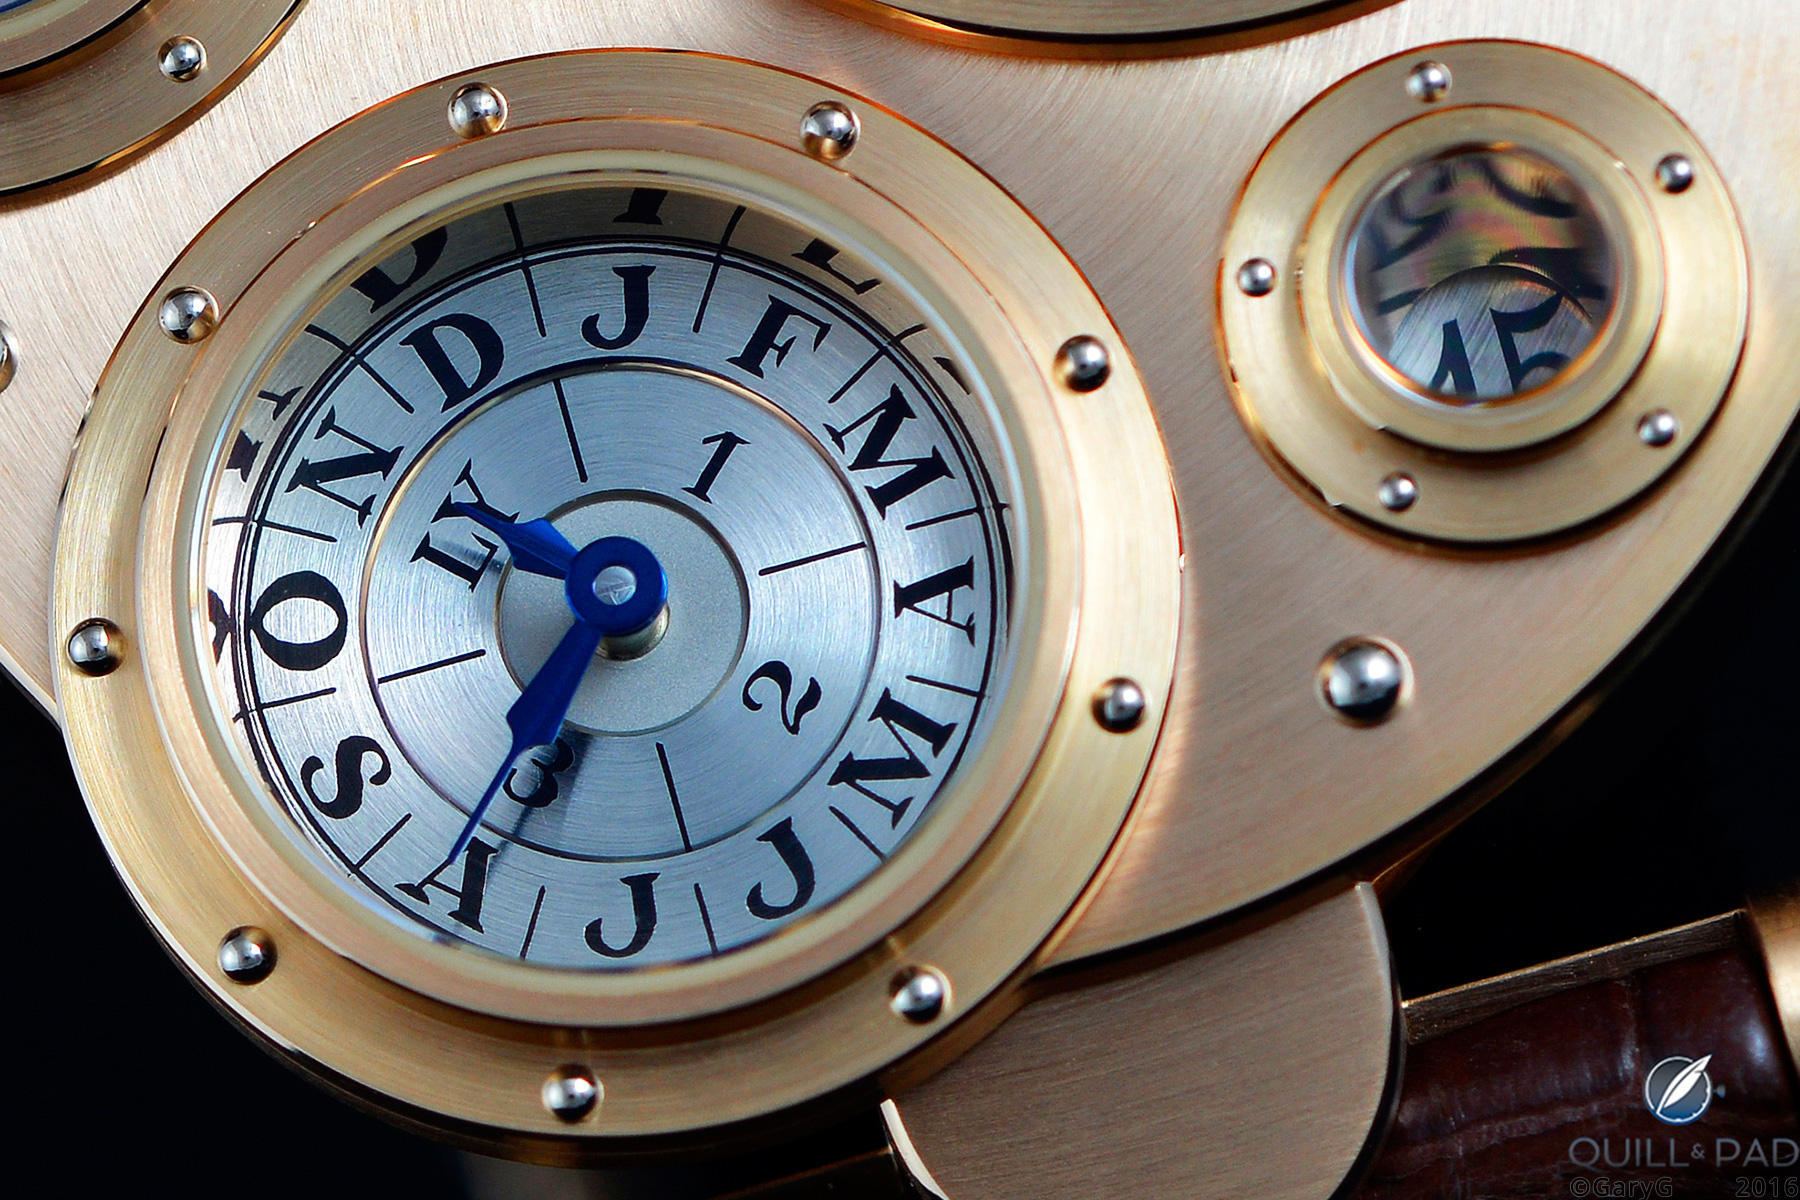 Reflects well on you: dial detail of Vianney Halter's Antiqua showing polished flange